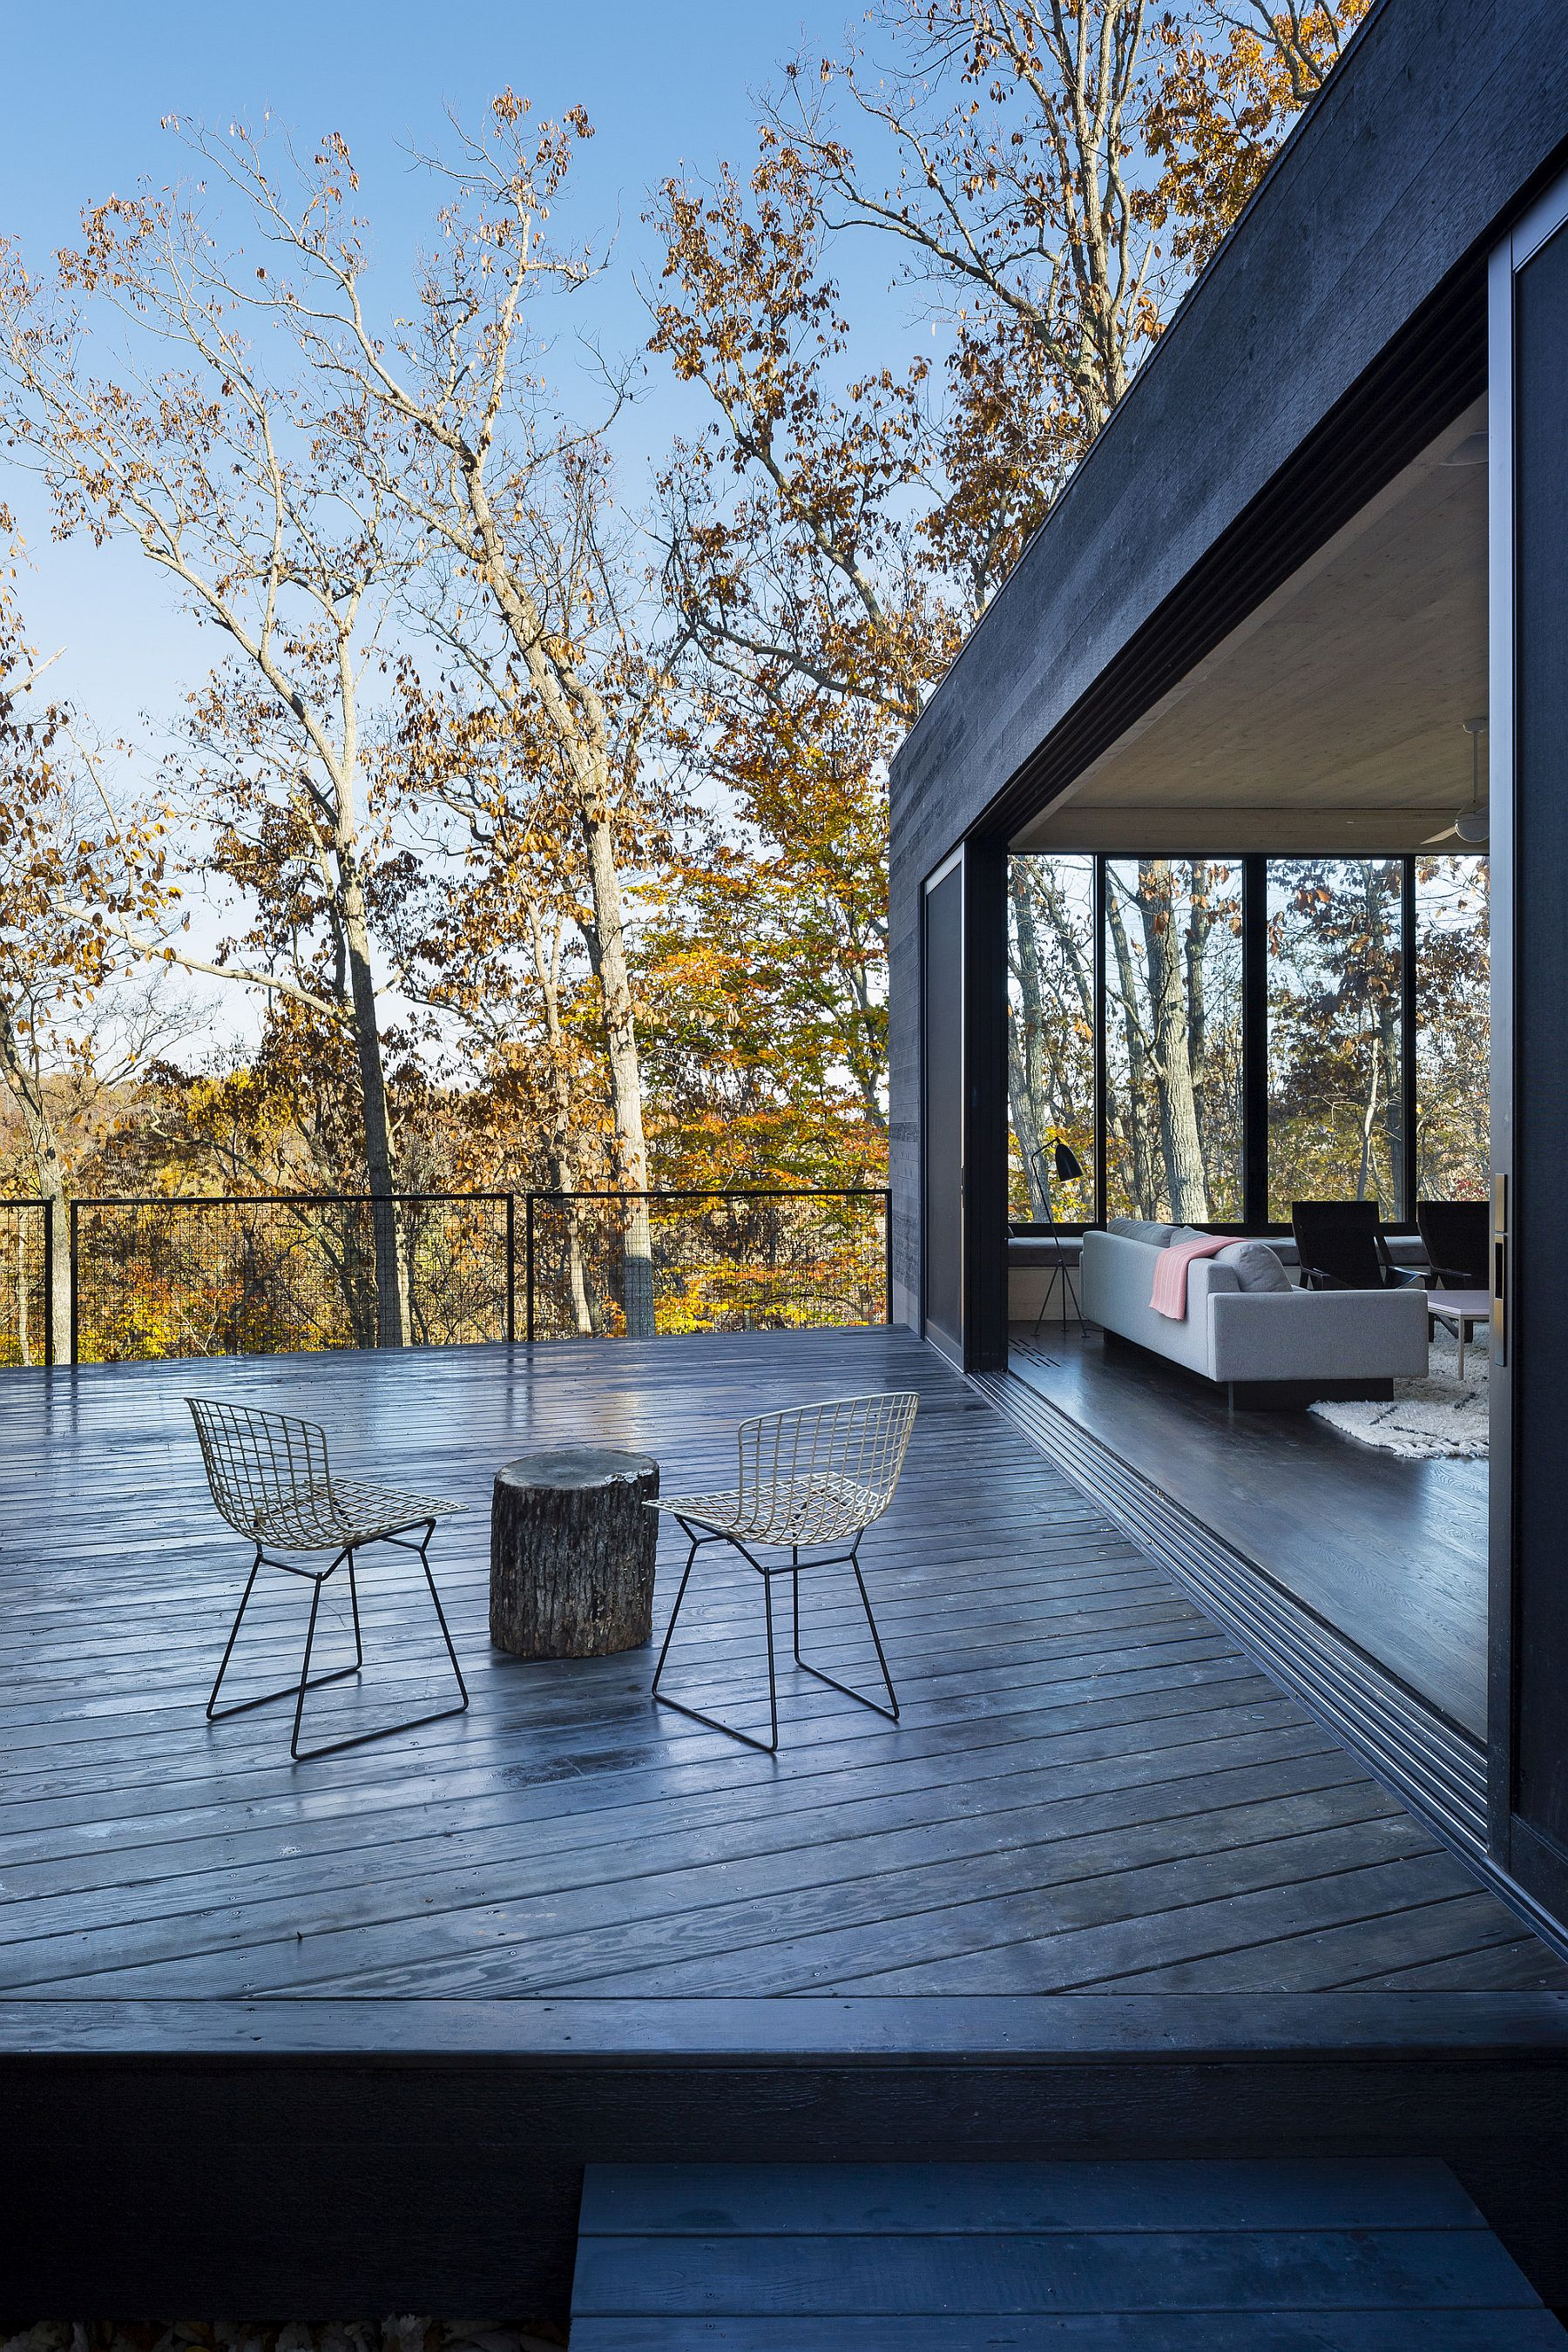 Living are of the house that flows into the deck outside